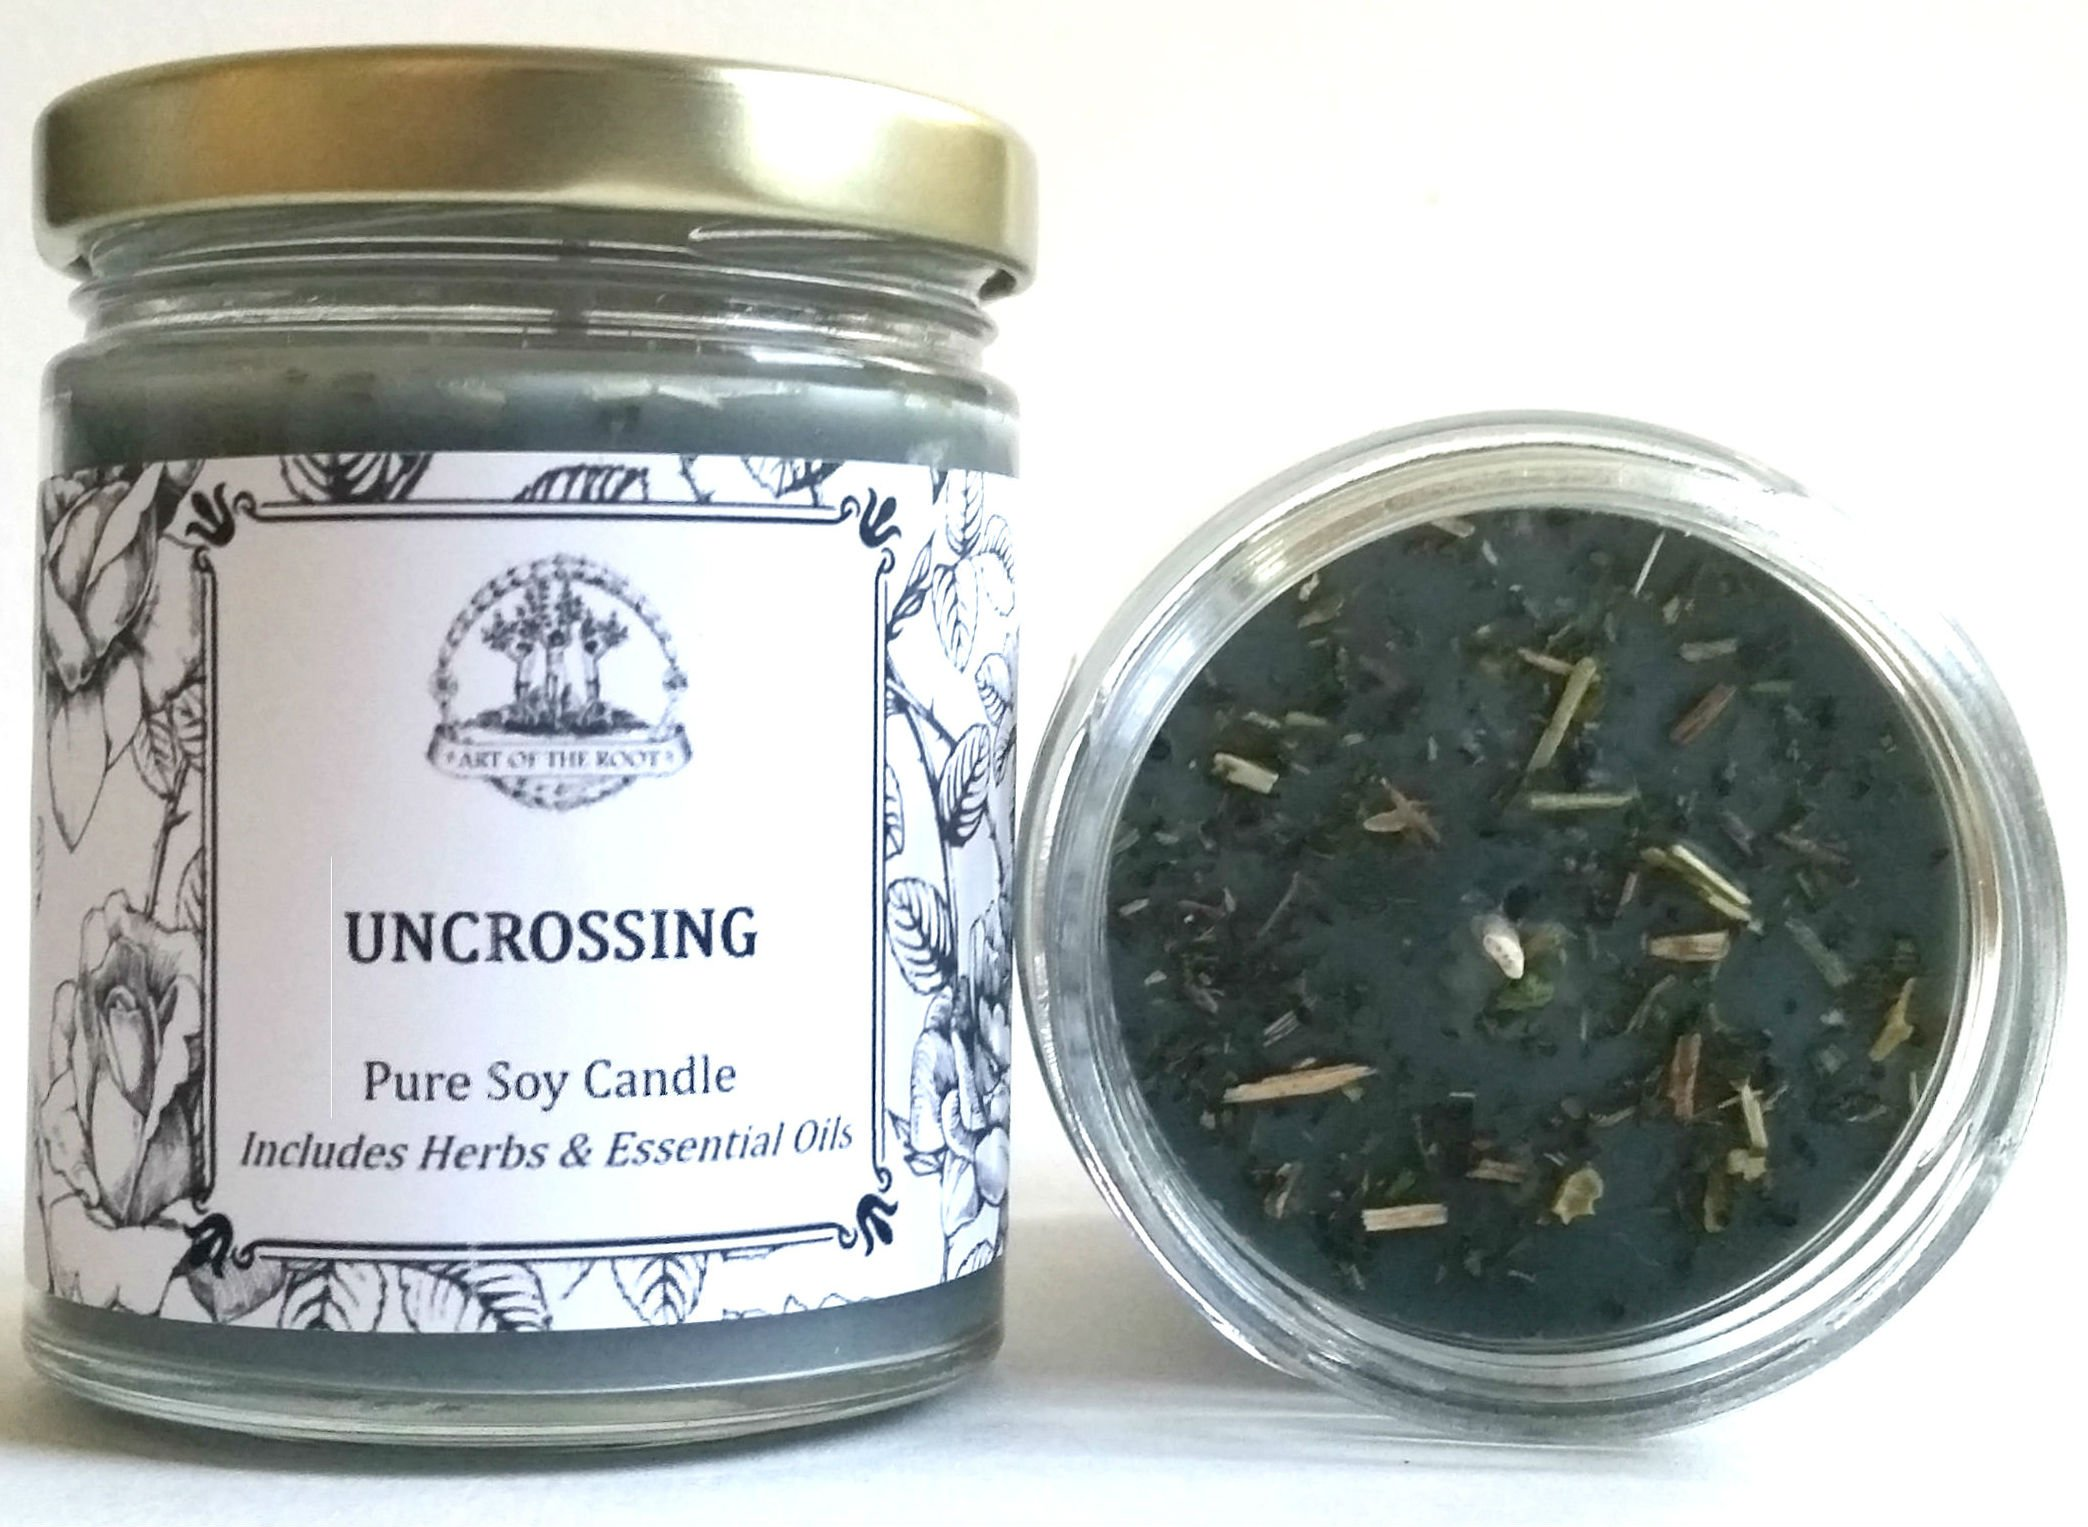 Art of the Root Uncrossing 8 oz Soy Herbal Spell Candle for Hexes, Curses, Jinxes & Negativity Hoodoo Wiccan Pagan Voodoo Magick